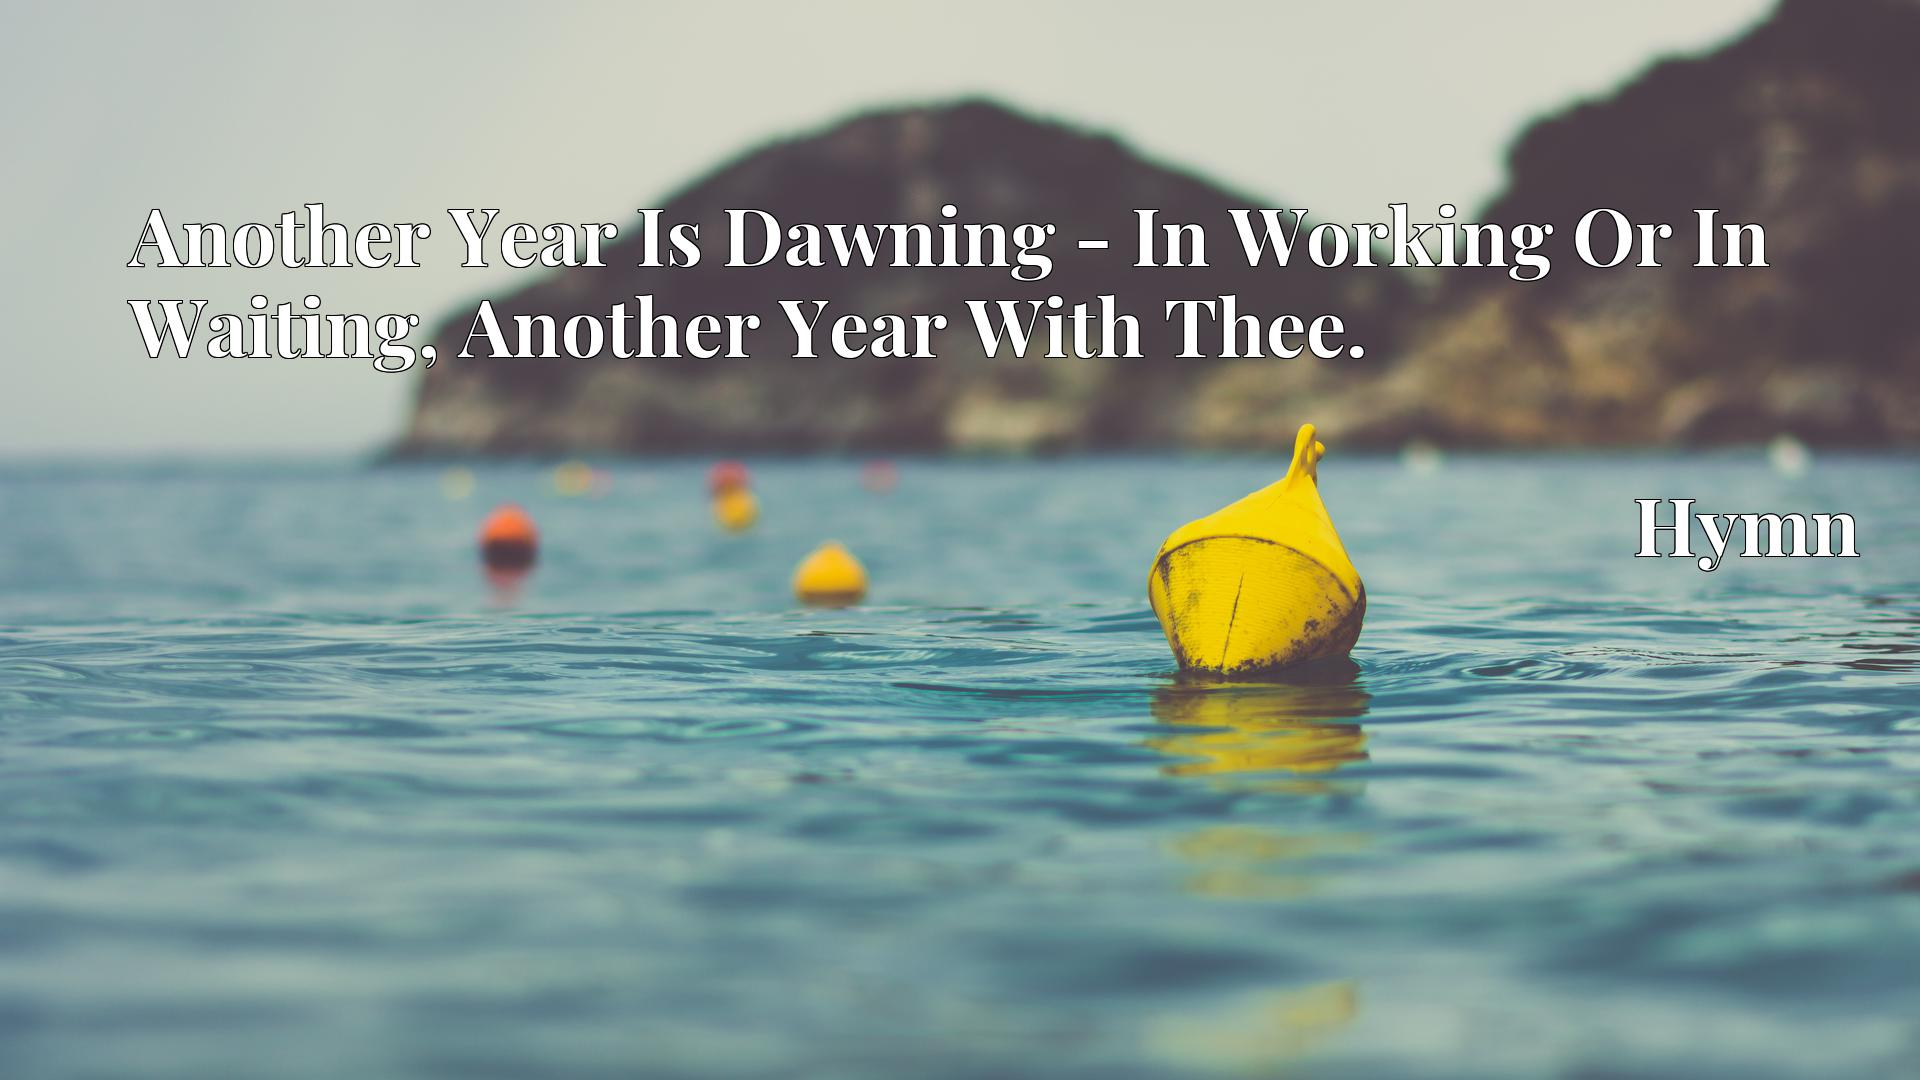 Another Year Is Dawning - In Working Or In Waiting, Another Year With Thee. - Hymn